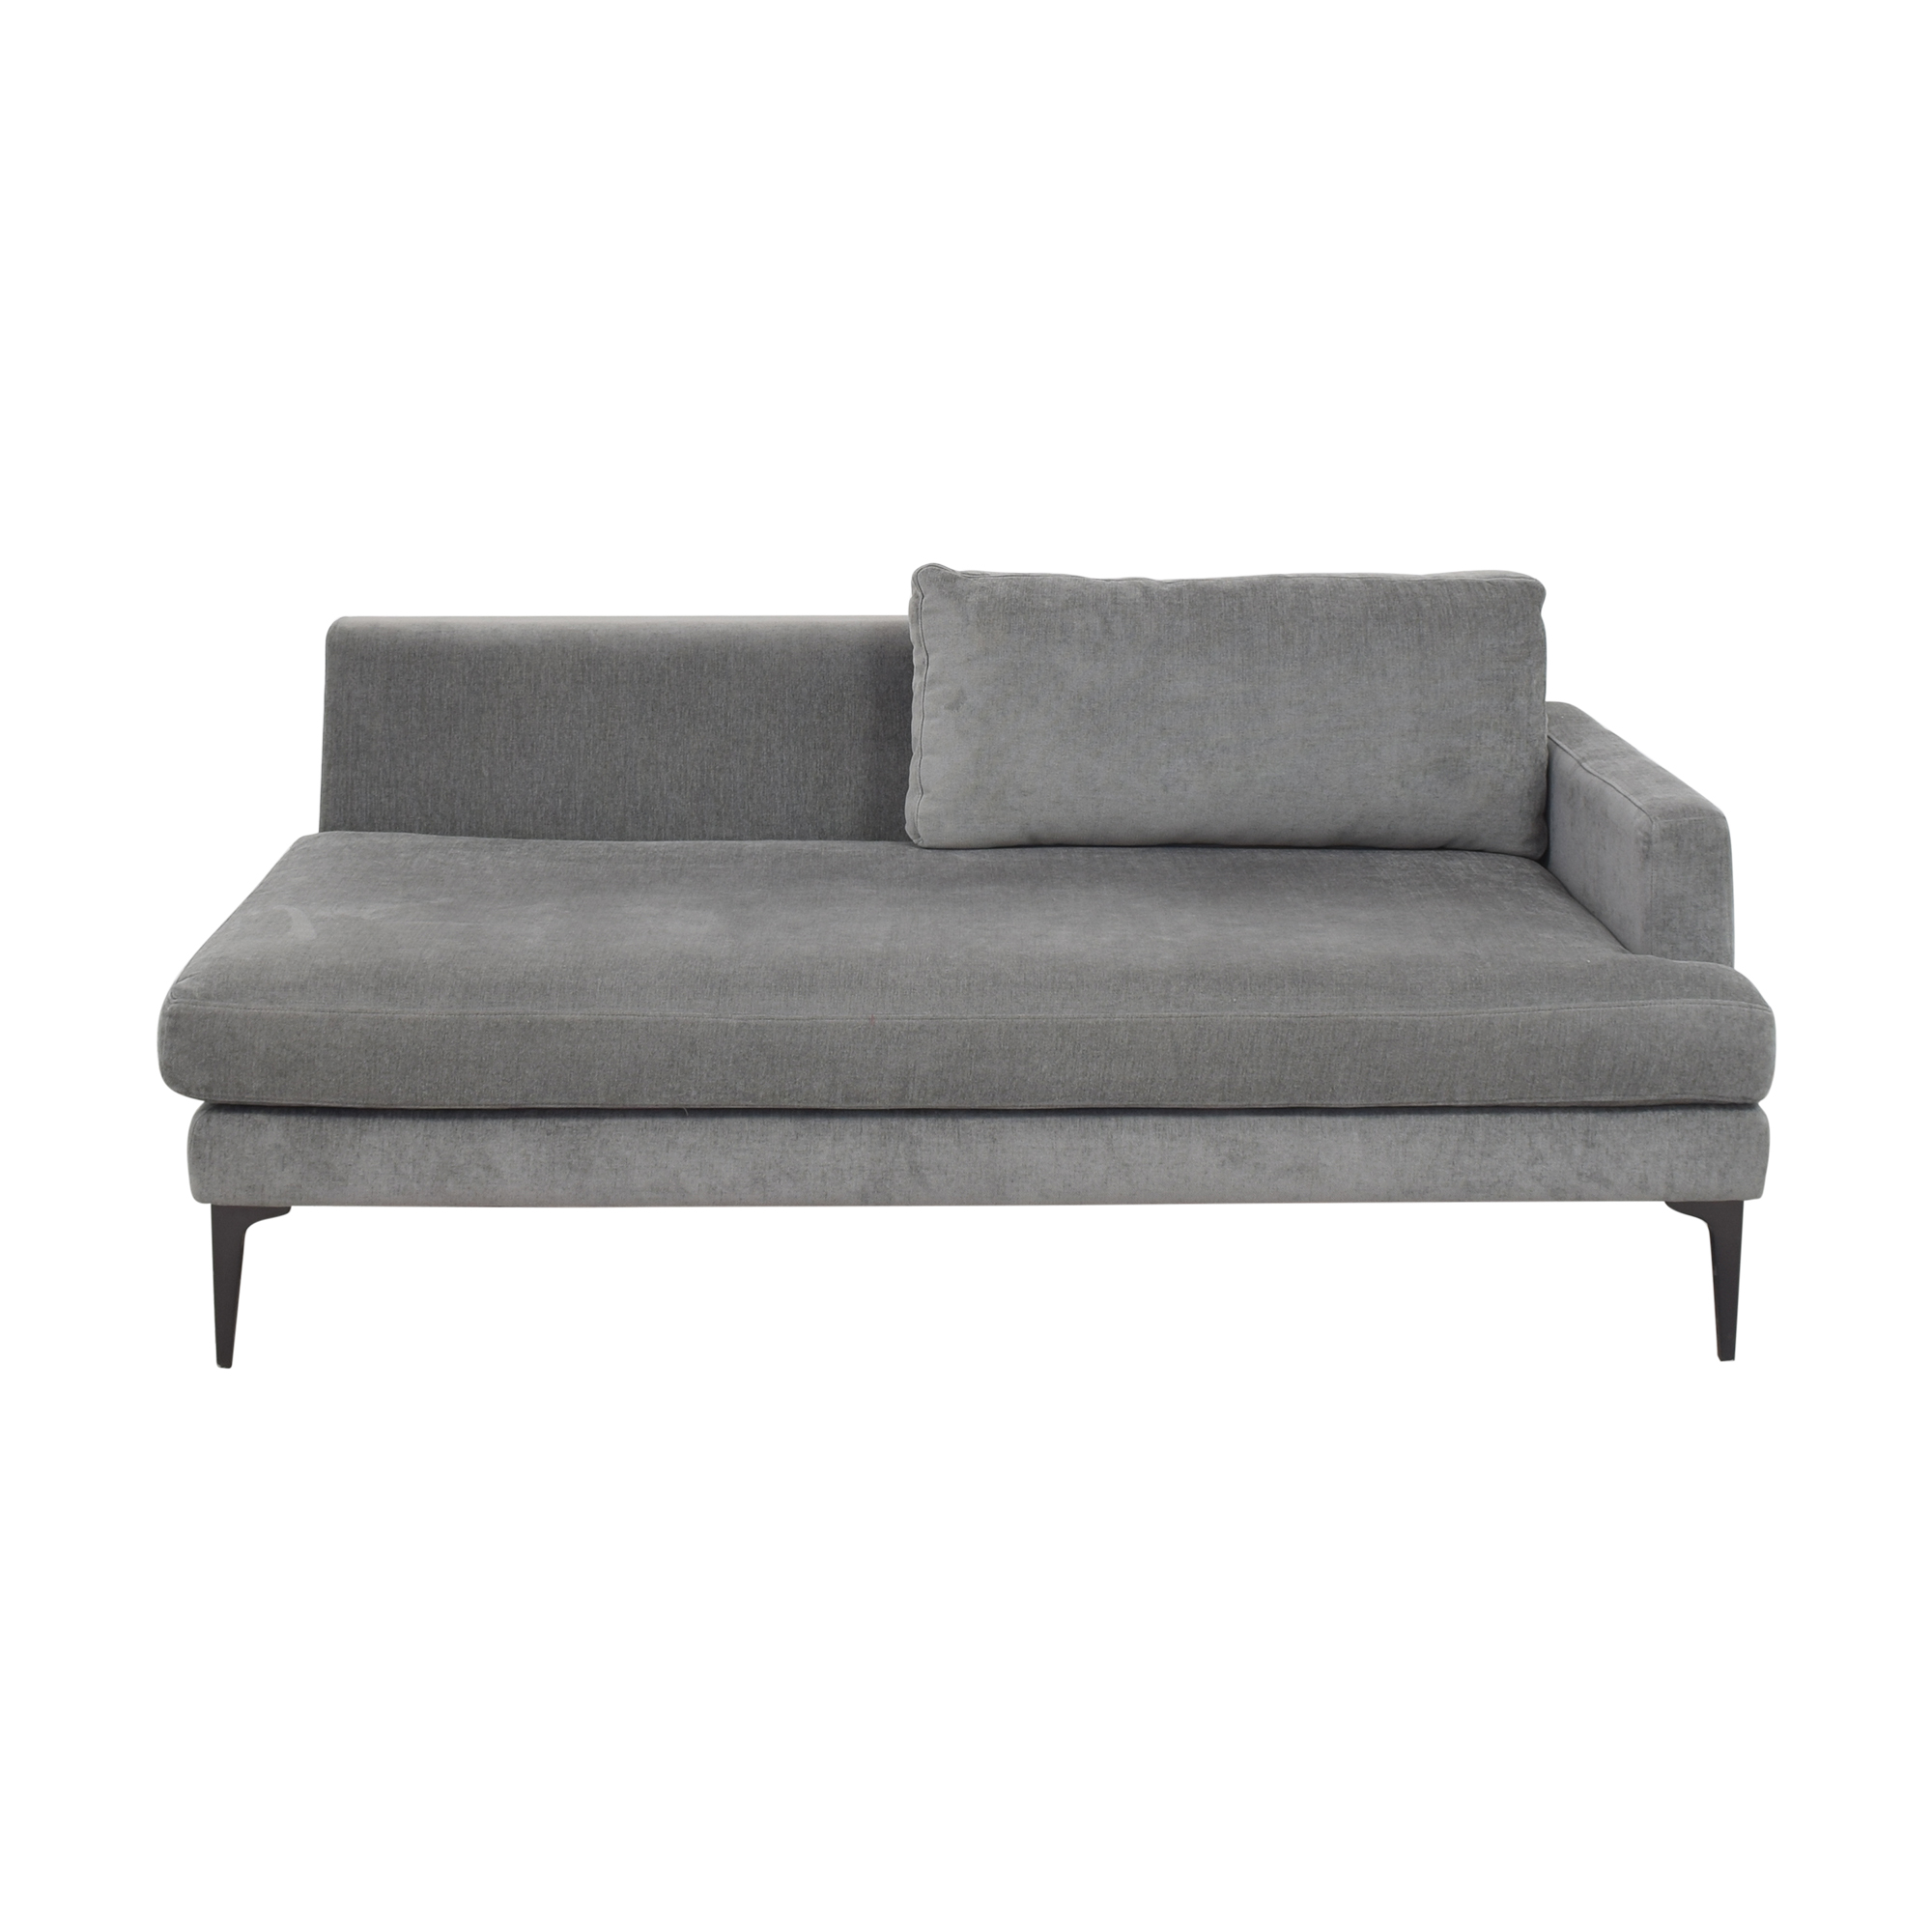 West Elm West Elm Andes Right Arm Sofa coupon